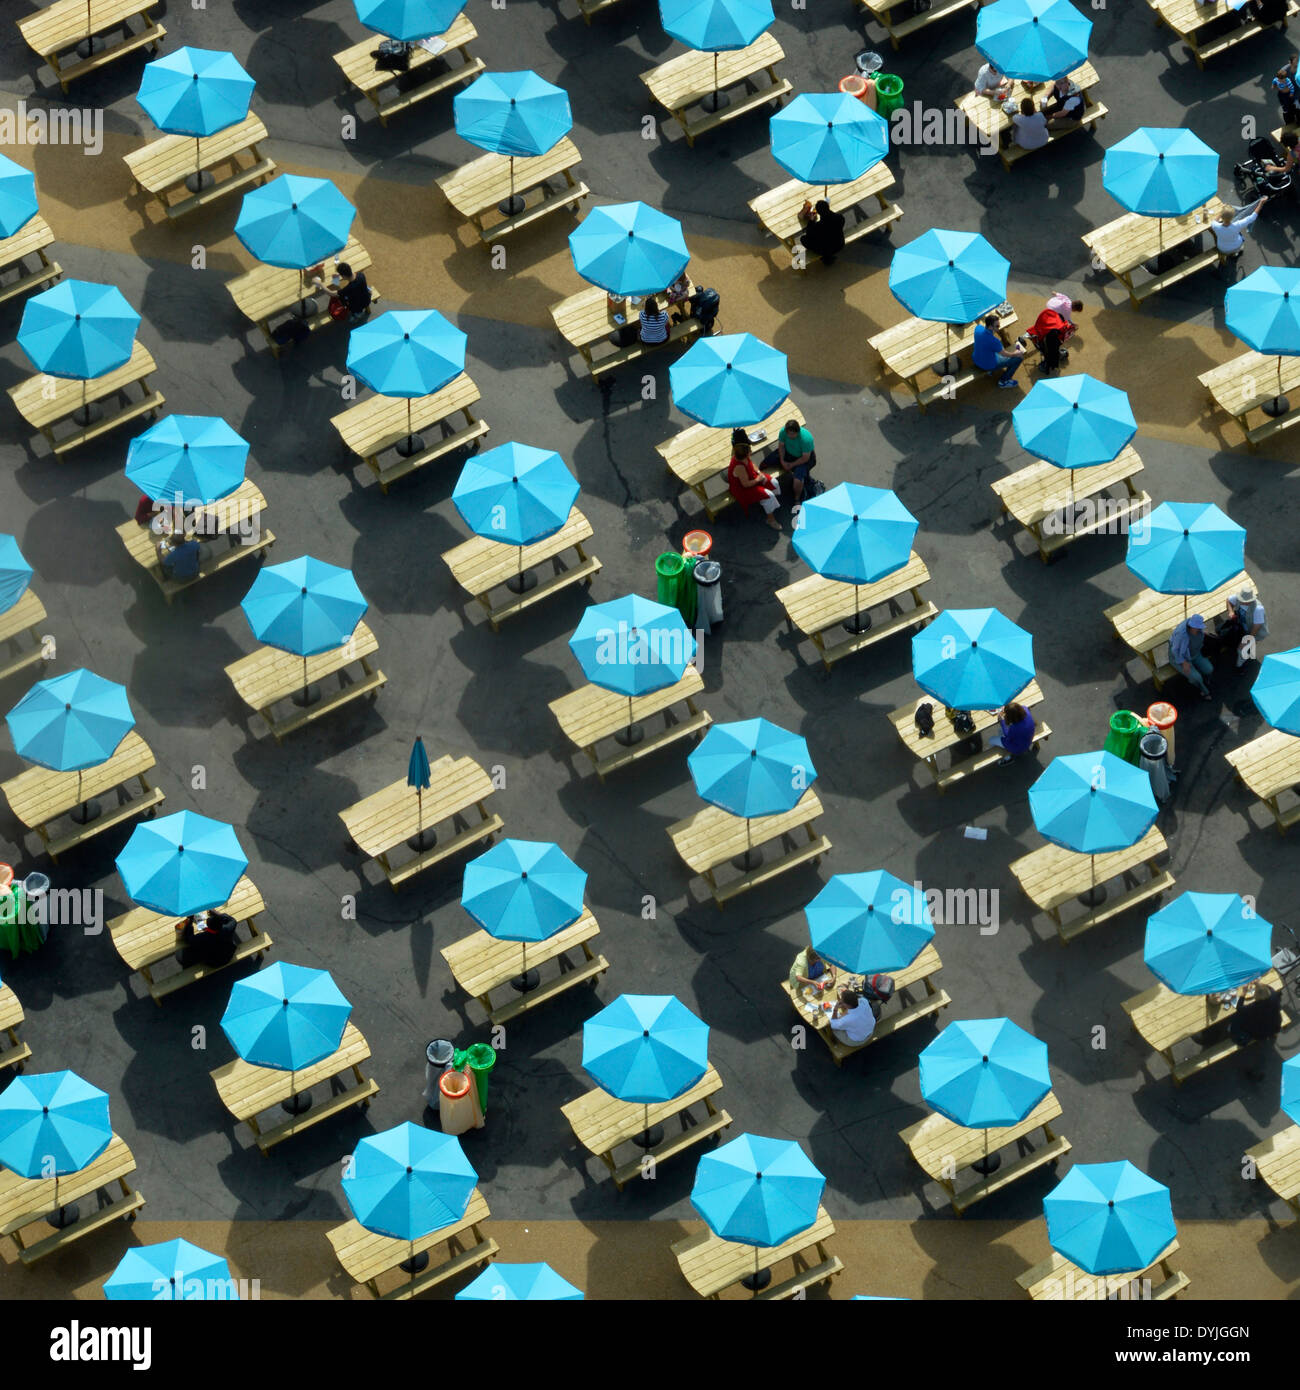 Colourful parasols shading picnic tables with one not open (odd one out) - Stock Image